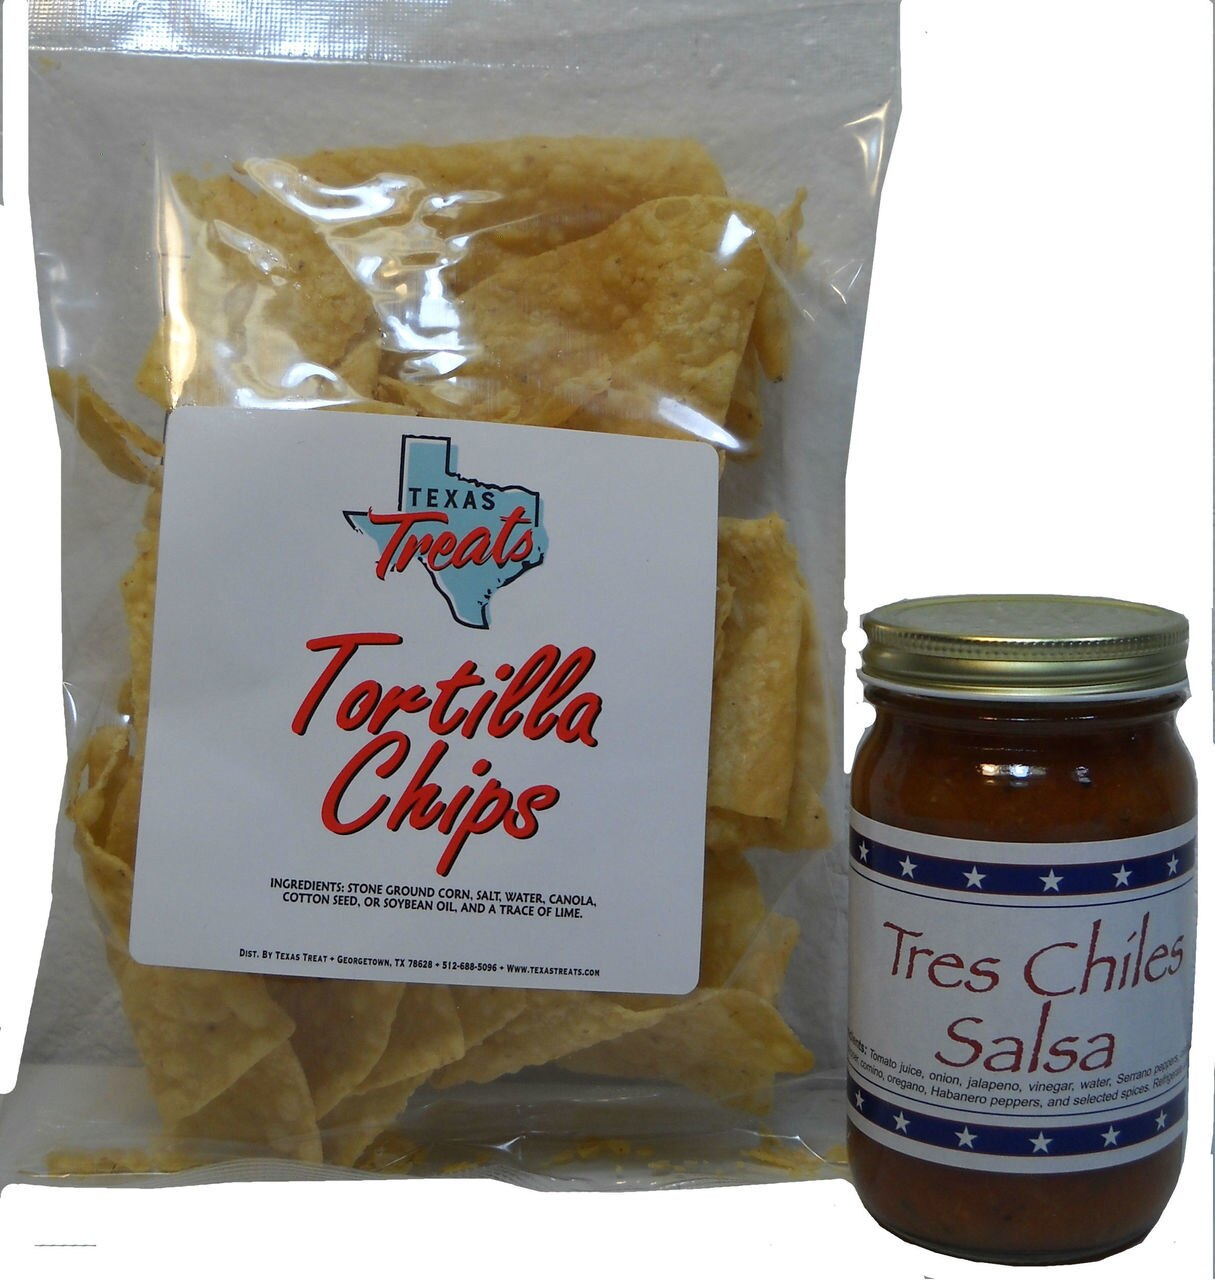 Texas Chips (3oz) & Salsa 1